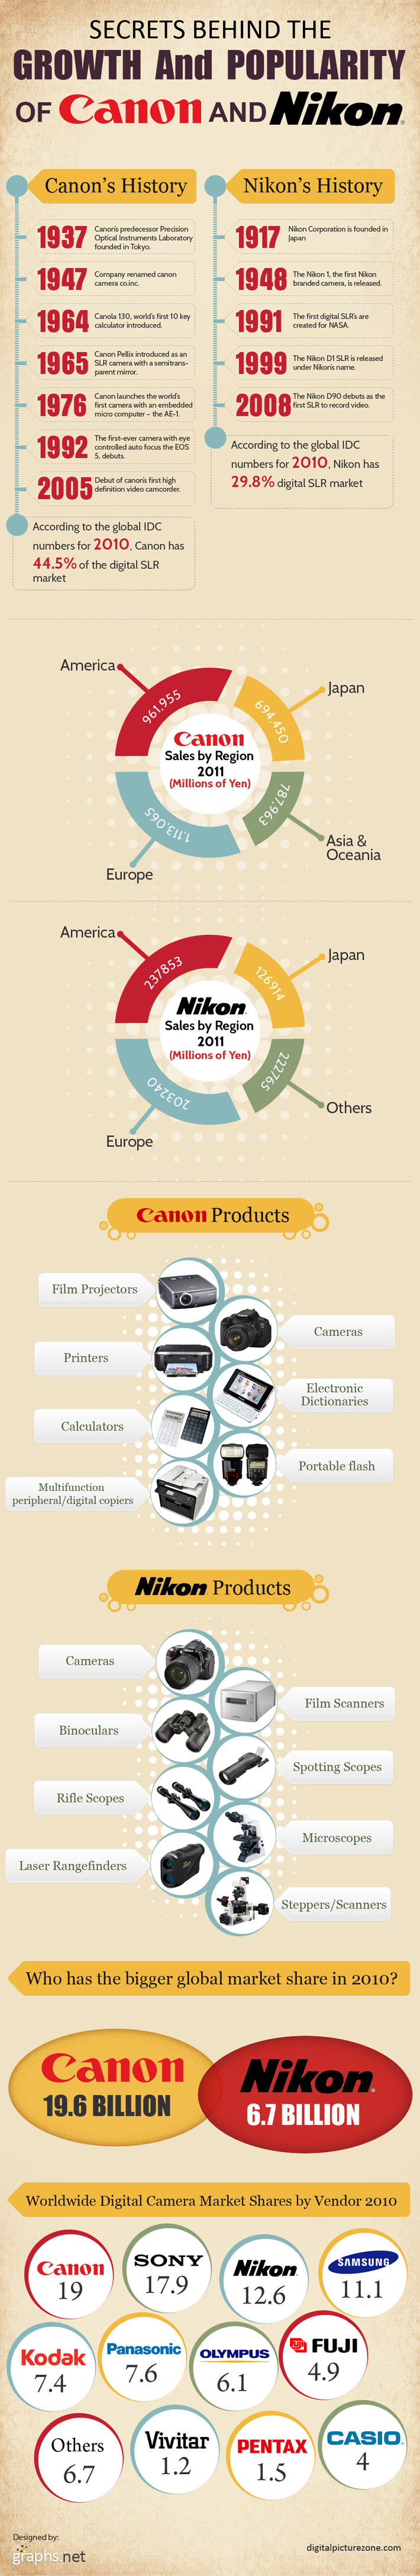 The secrets behind the growth and popularity of Canon and Nikon.